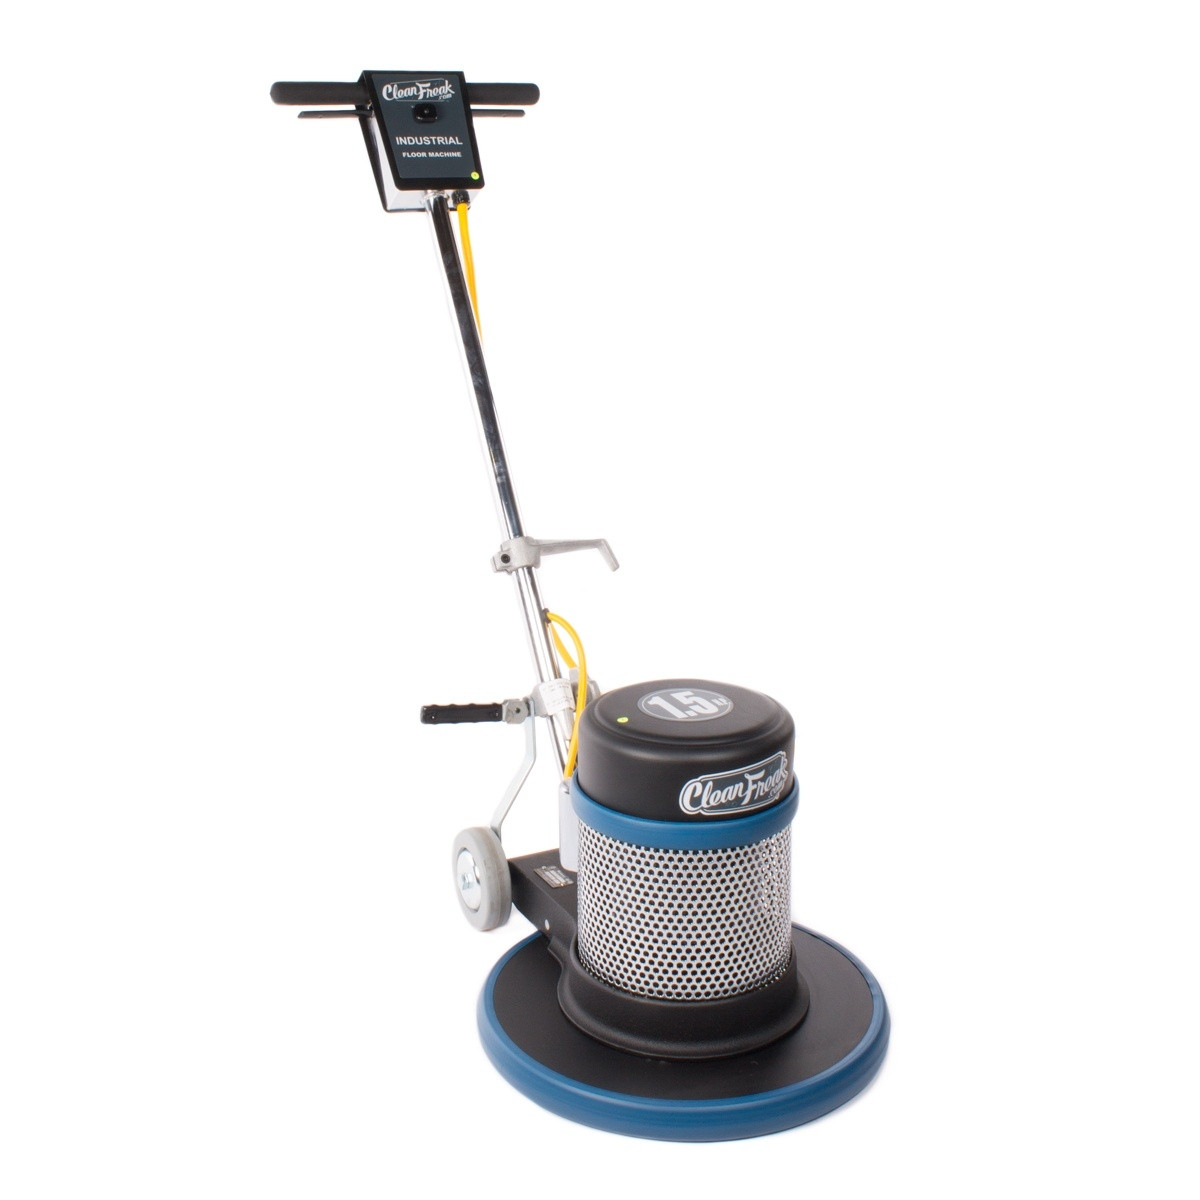 Cleanfreak 17 inch carpet scrubbing floor buffer machine for 13 inch floor buffer